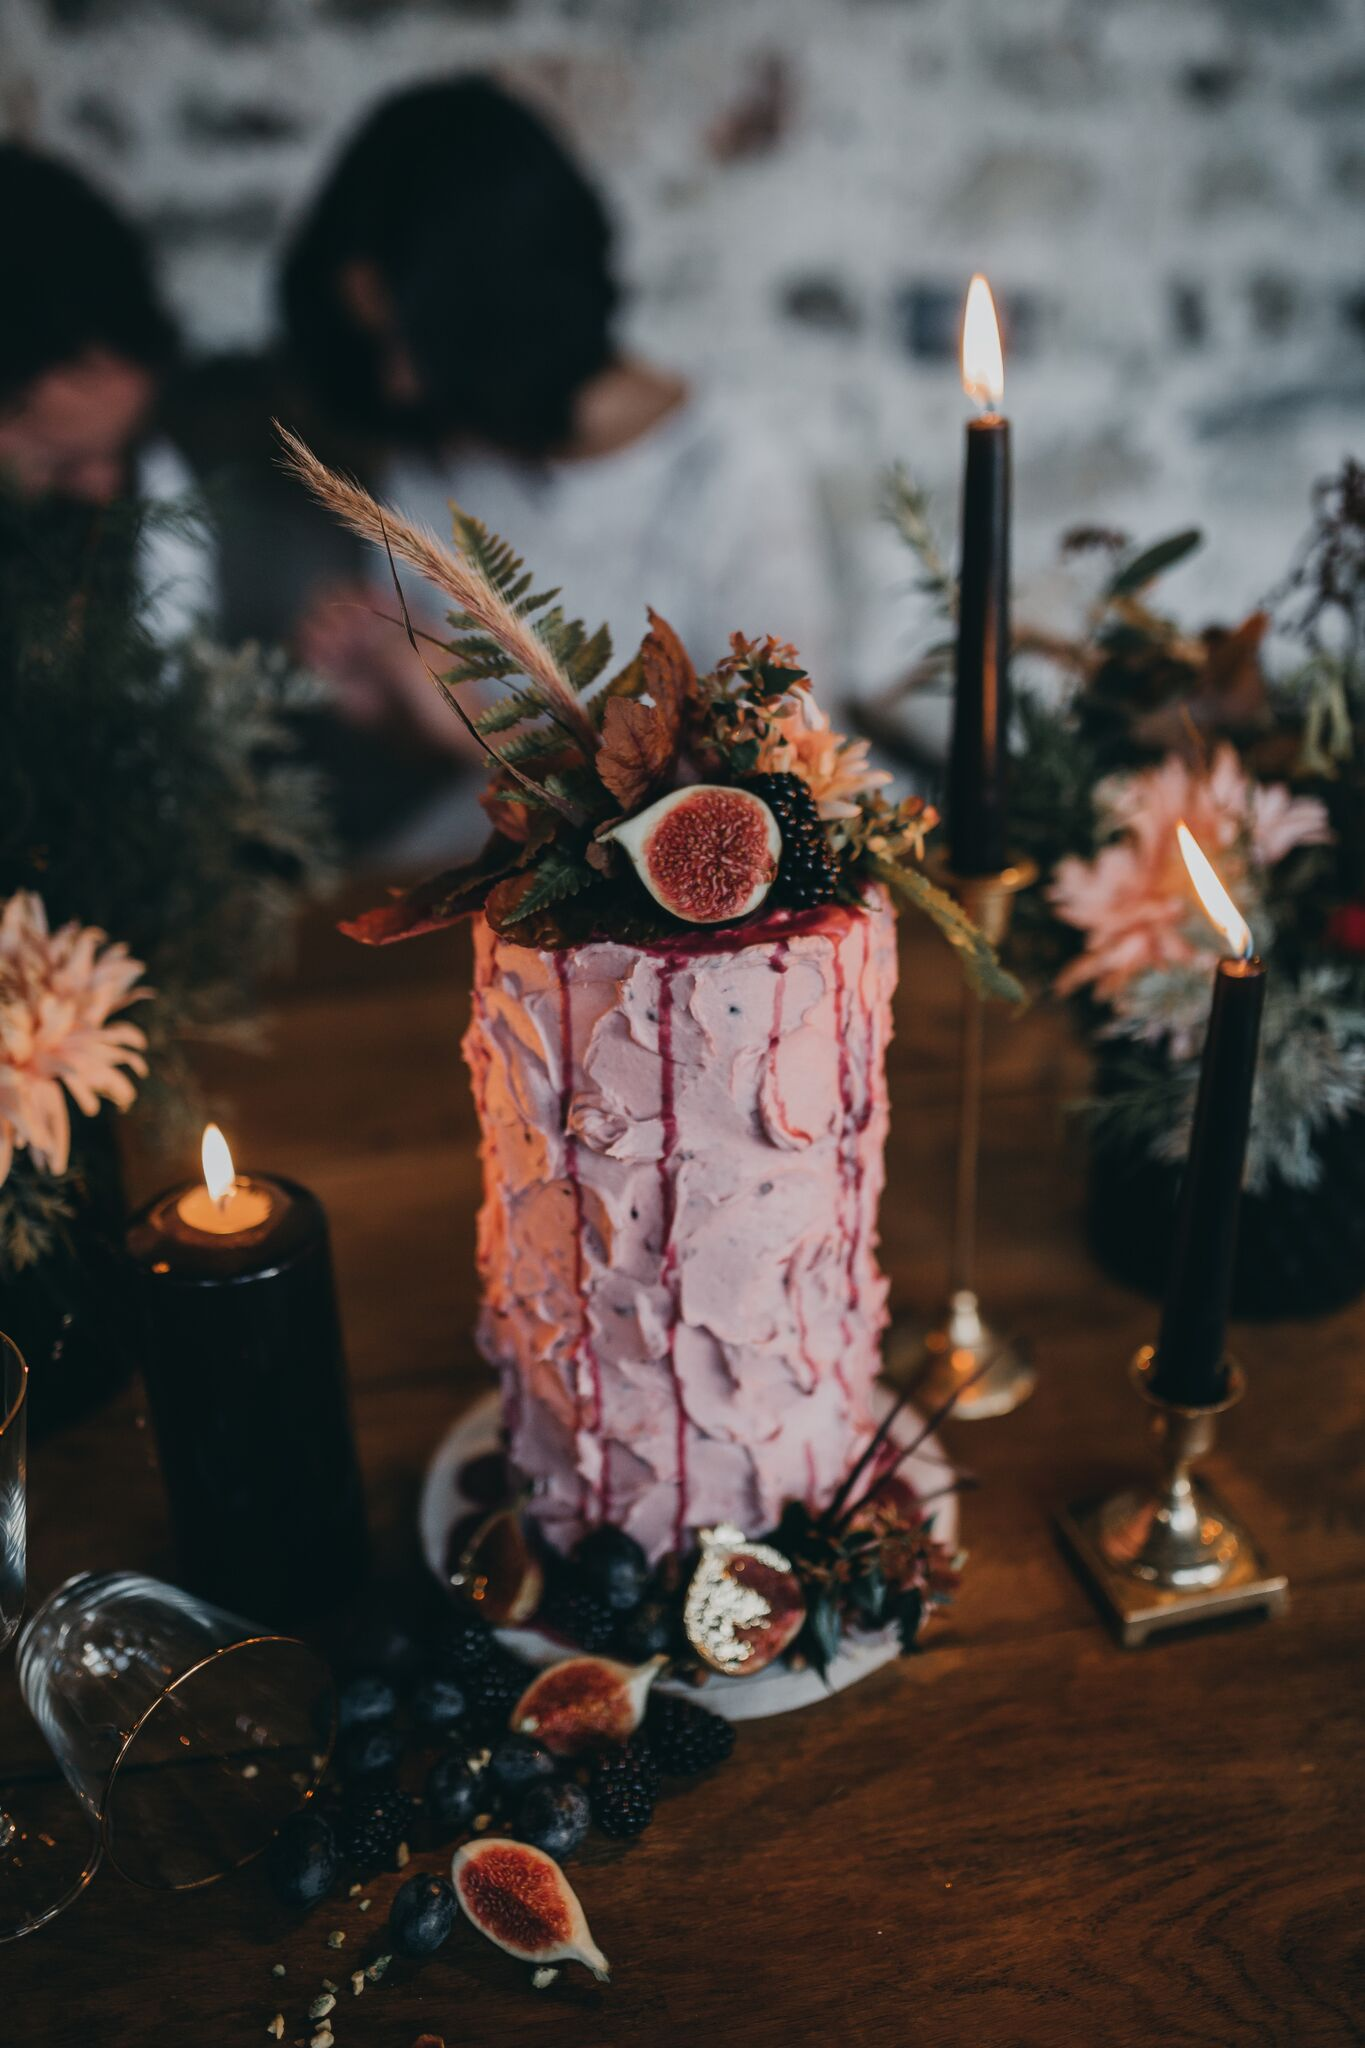 Where the Ribbon Ends - Alternative wedding cake - Creative wedding cake 2